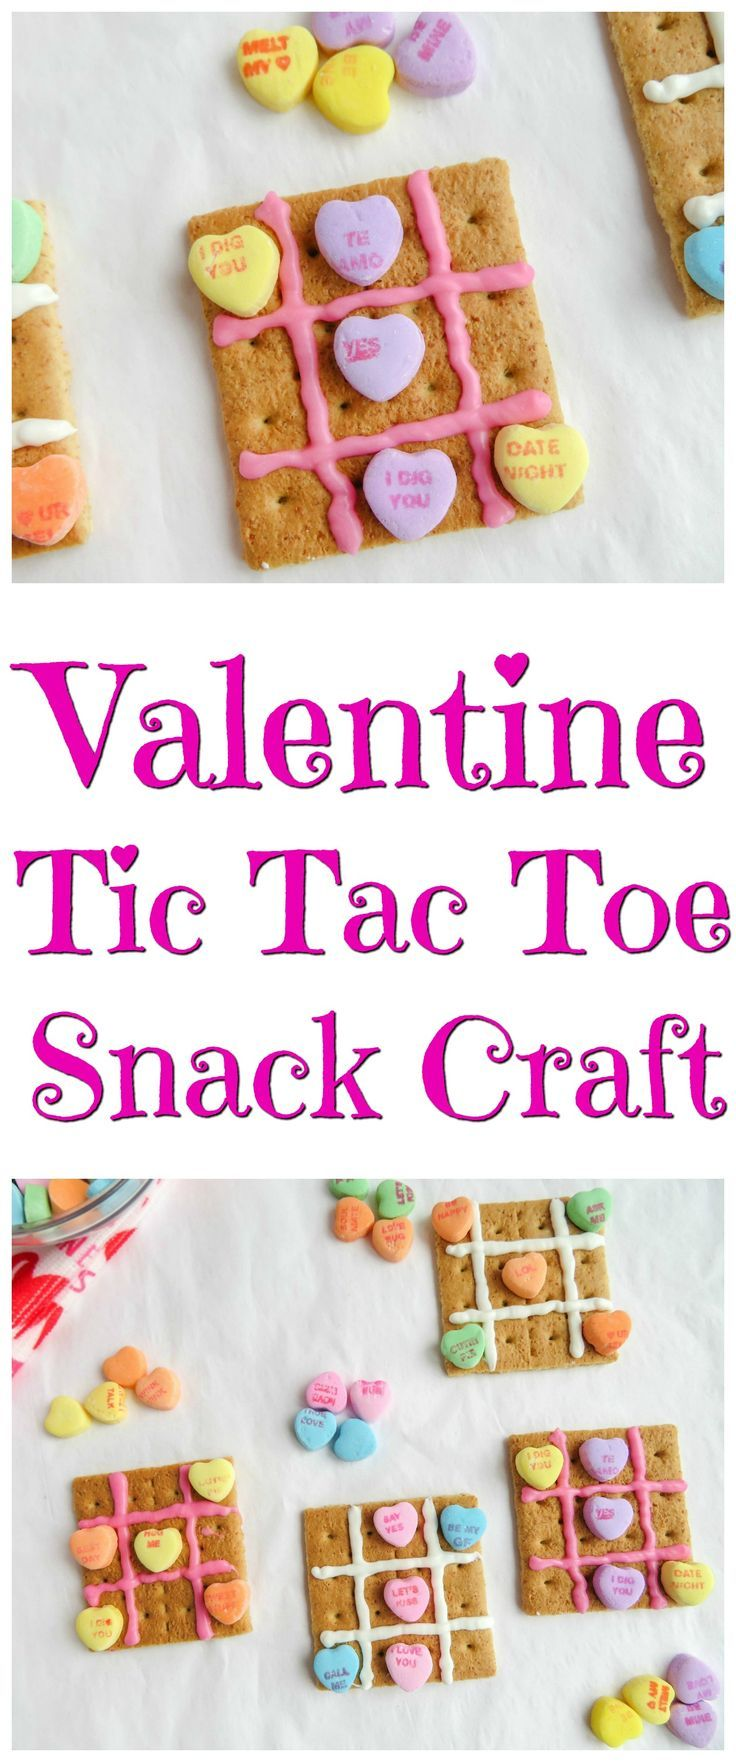 Valentine Tic Tac Toe Snack Craft | Perfect for a classroom party or kids group. Graham crackers, frosting, and conversation hearts